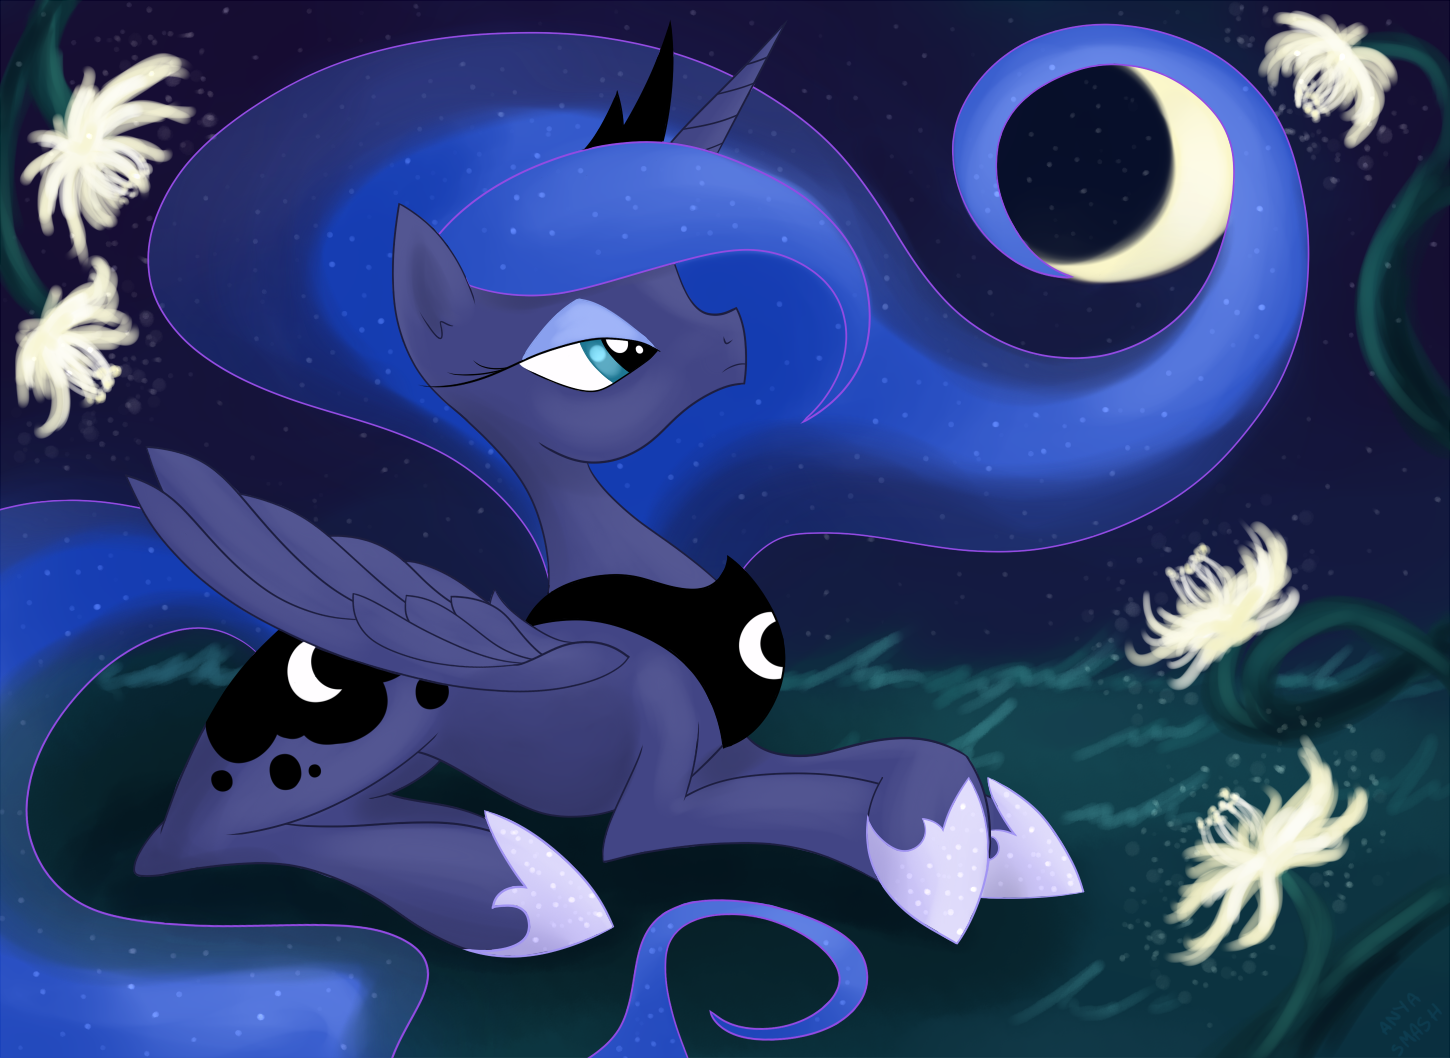 Luna and Night Blooming Cereus by Faikie